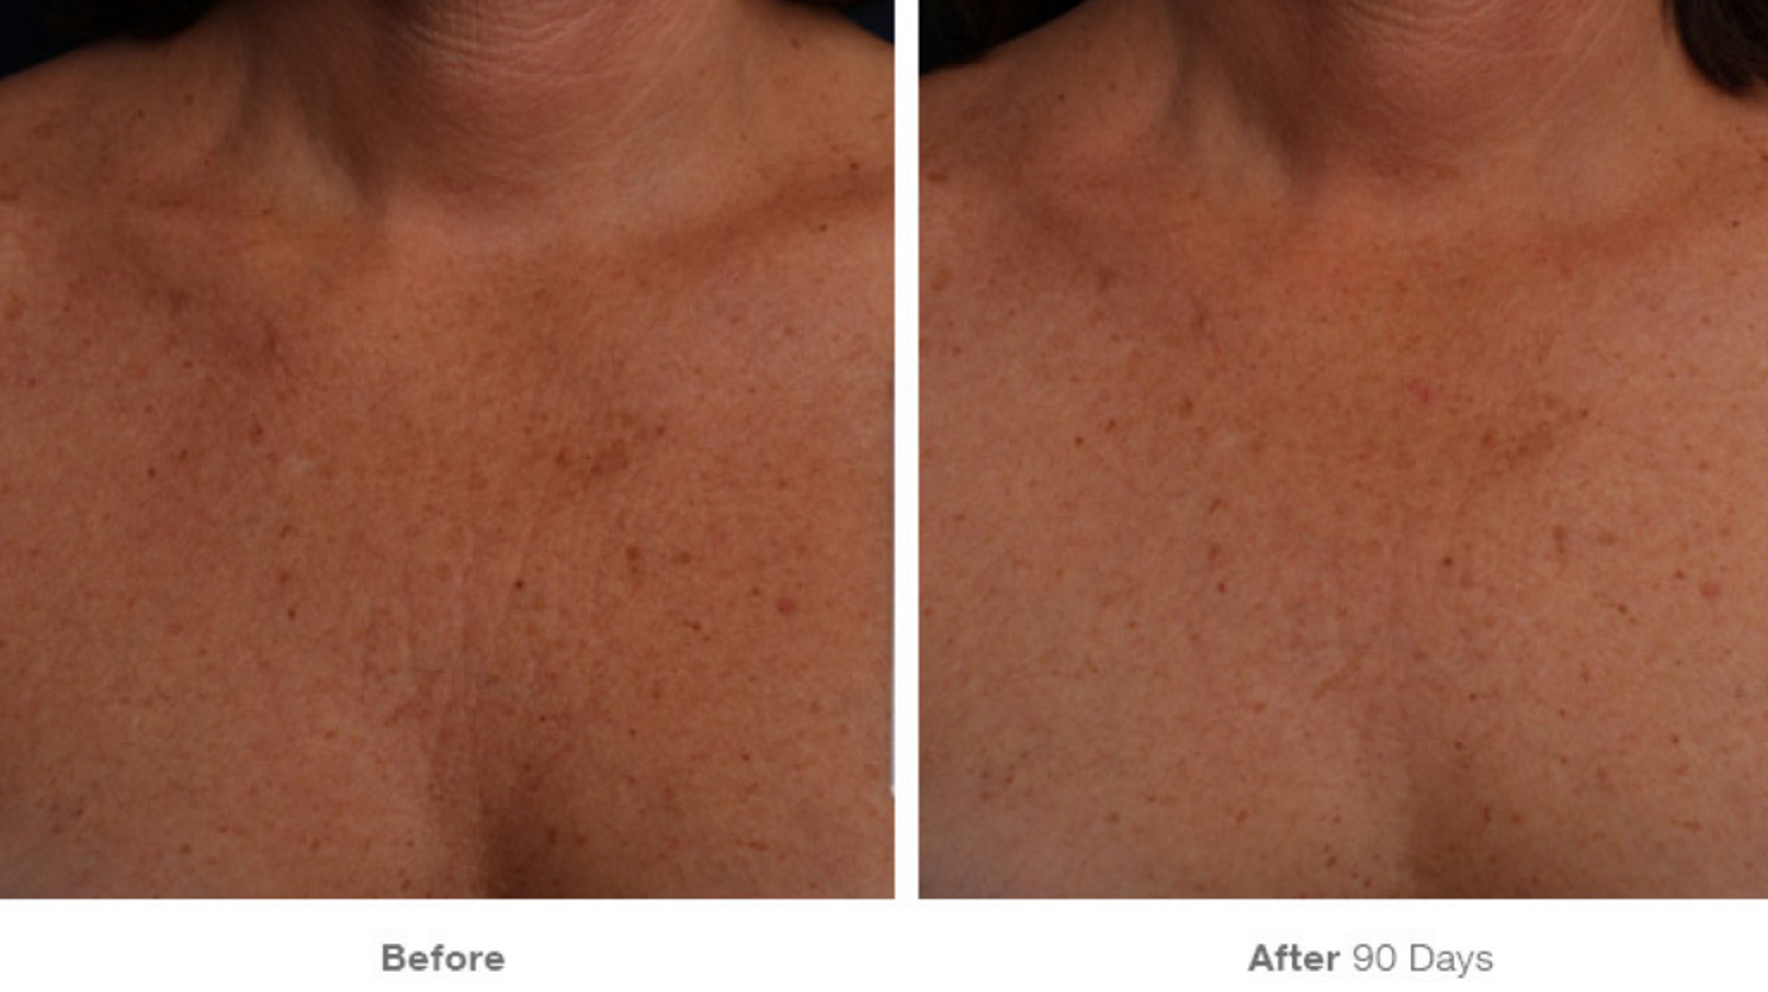 Ultherapy® is FDA-cleared to improve décolletage lines and wrinkles! Check out our gallery of before and afters.  *The non-invasive Ultherapy® procedure is U.S. FDA-cleared to lift skin on the neck, on the eyebrow and under the chin as well as to improve lines and wrinkles on the décolletage. The most common side effects reported in clinical trials were redness, swelling, pain, and transient nerve effects. For full product and safety information, visit www.ultherapy.com/IFU.